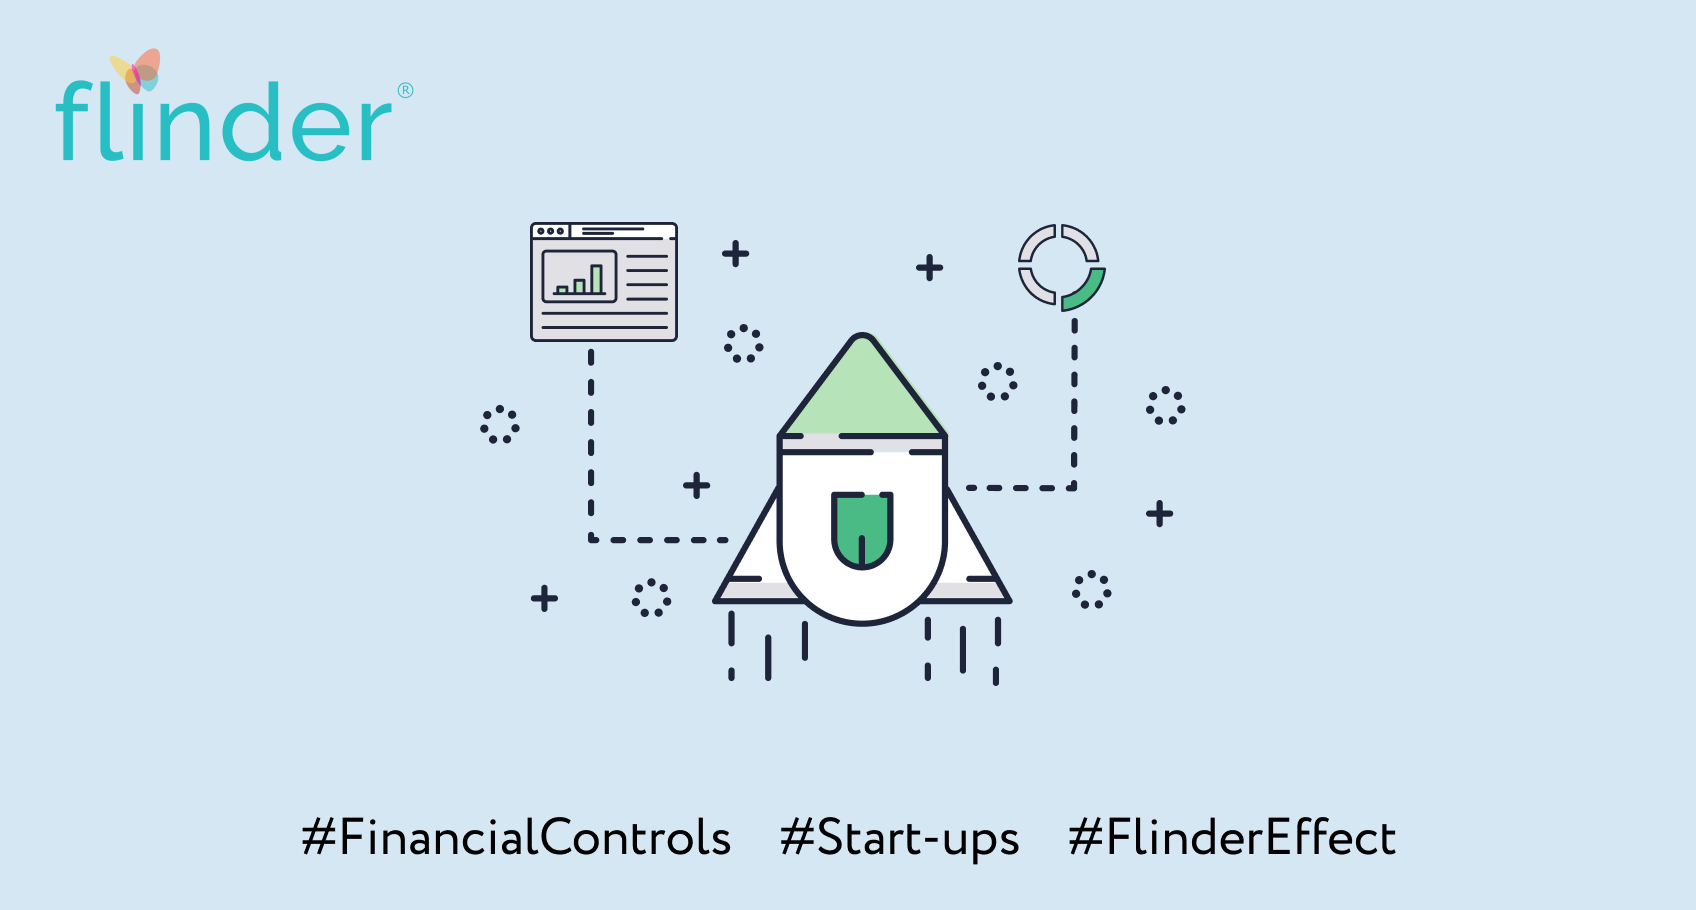 Financial controls enable start-ups to get to the next level with investors